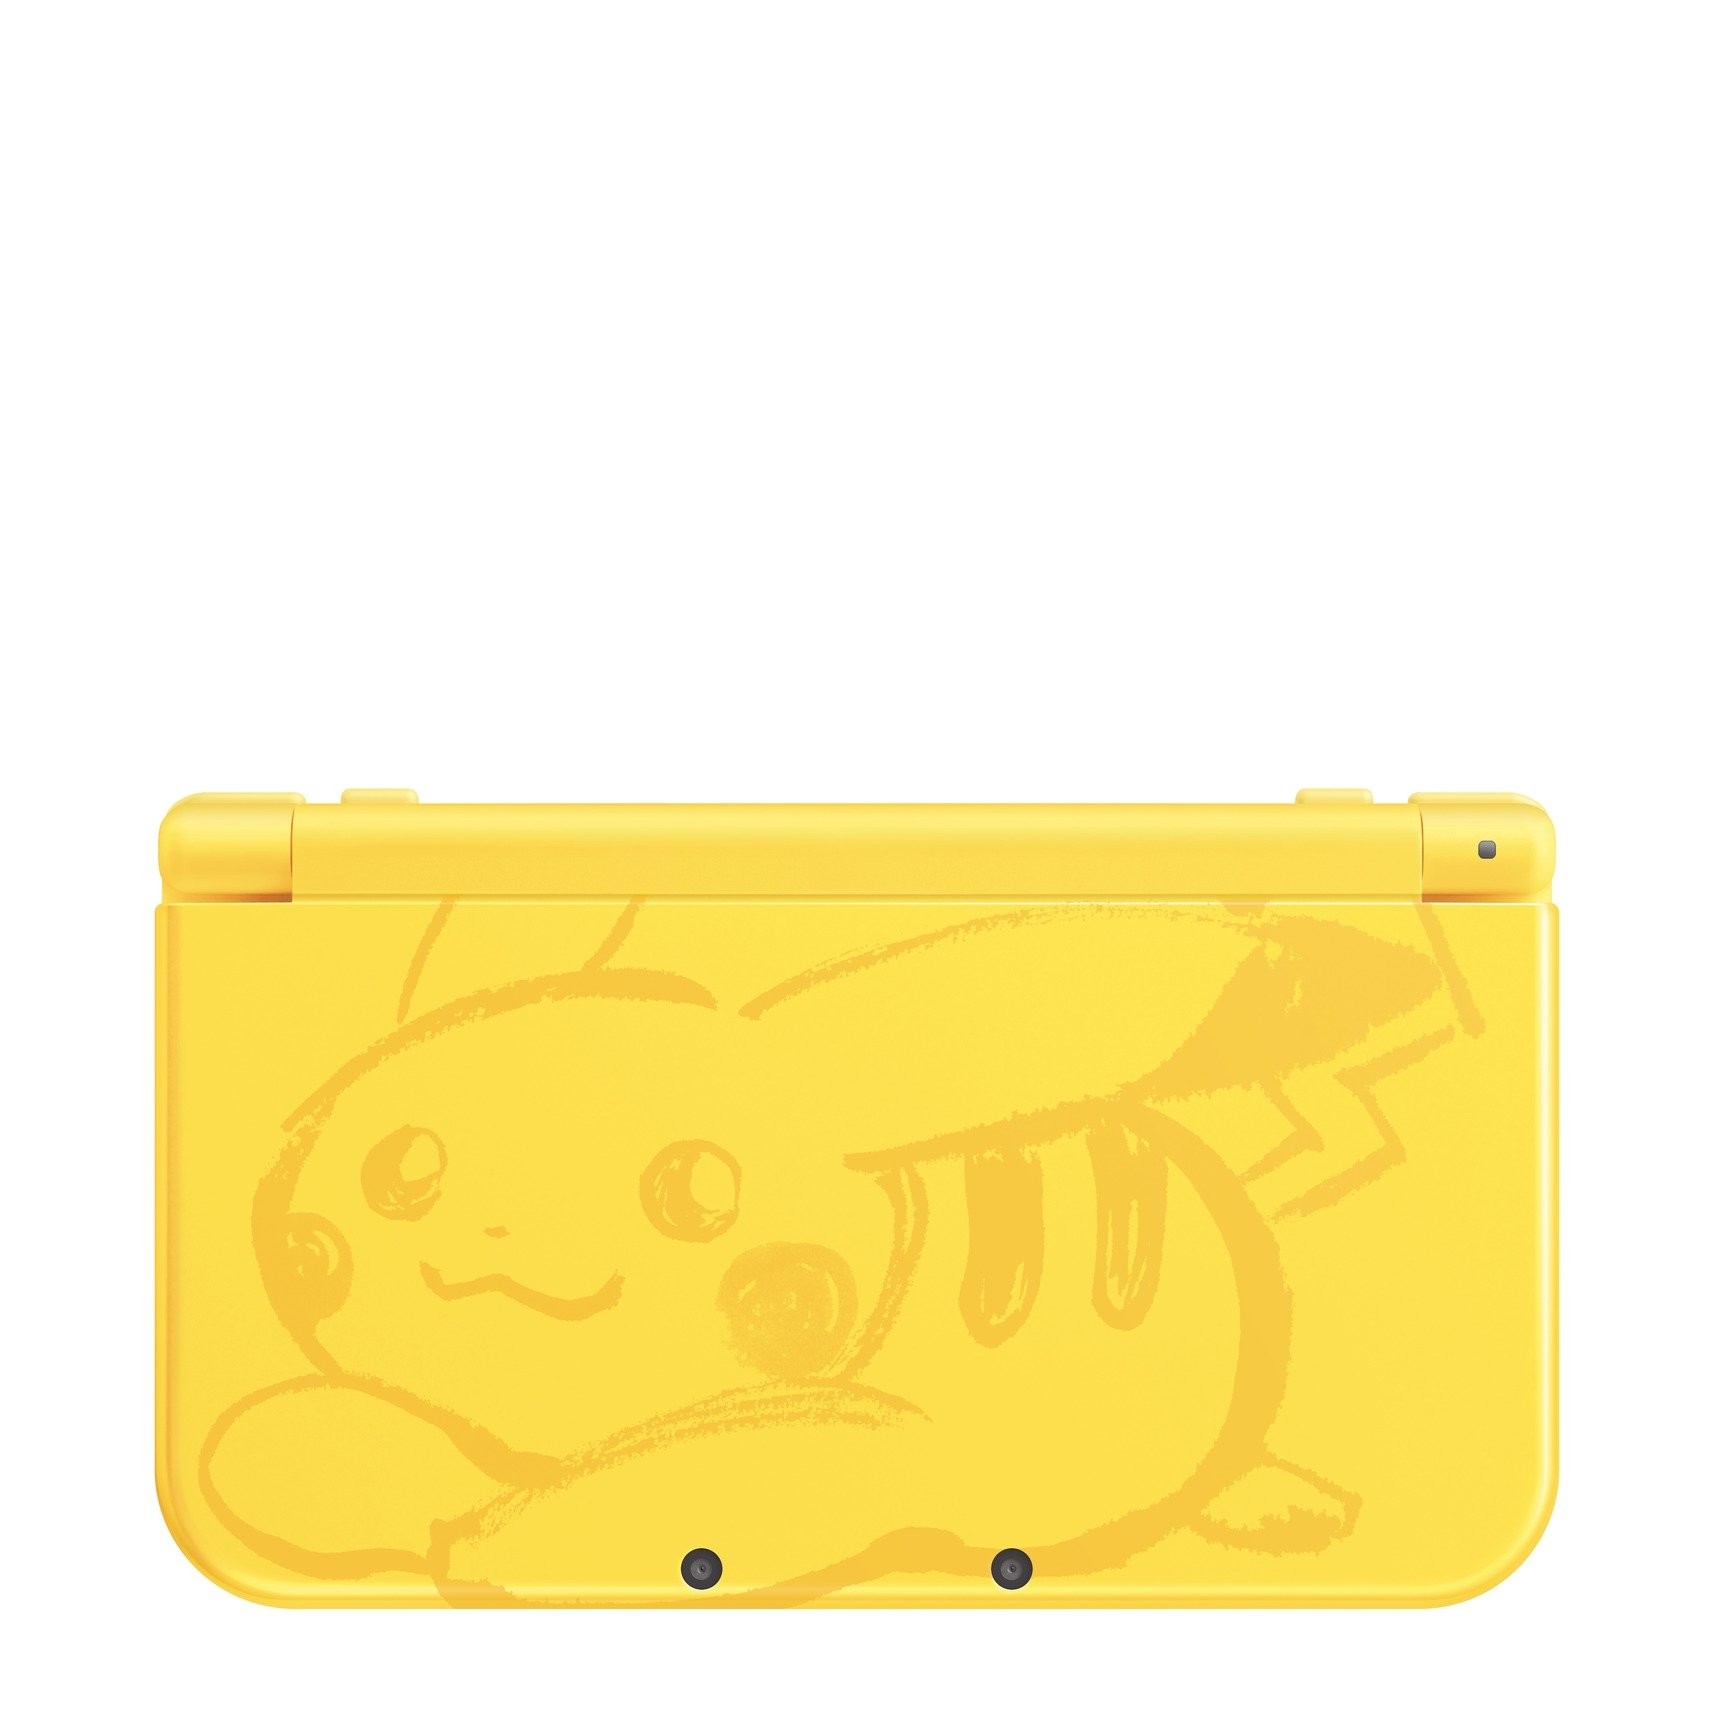 Nintendo New 3DS XL - Pikachu Yellow Edition [Discontinued] by Nintendo (Image #3)